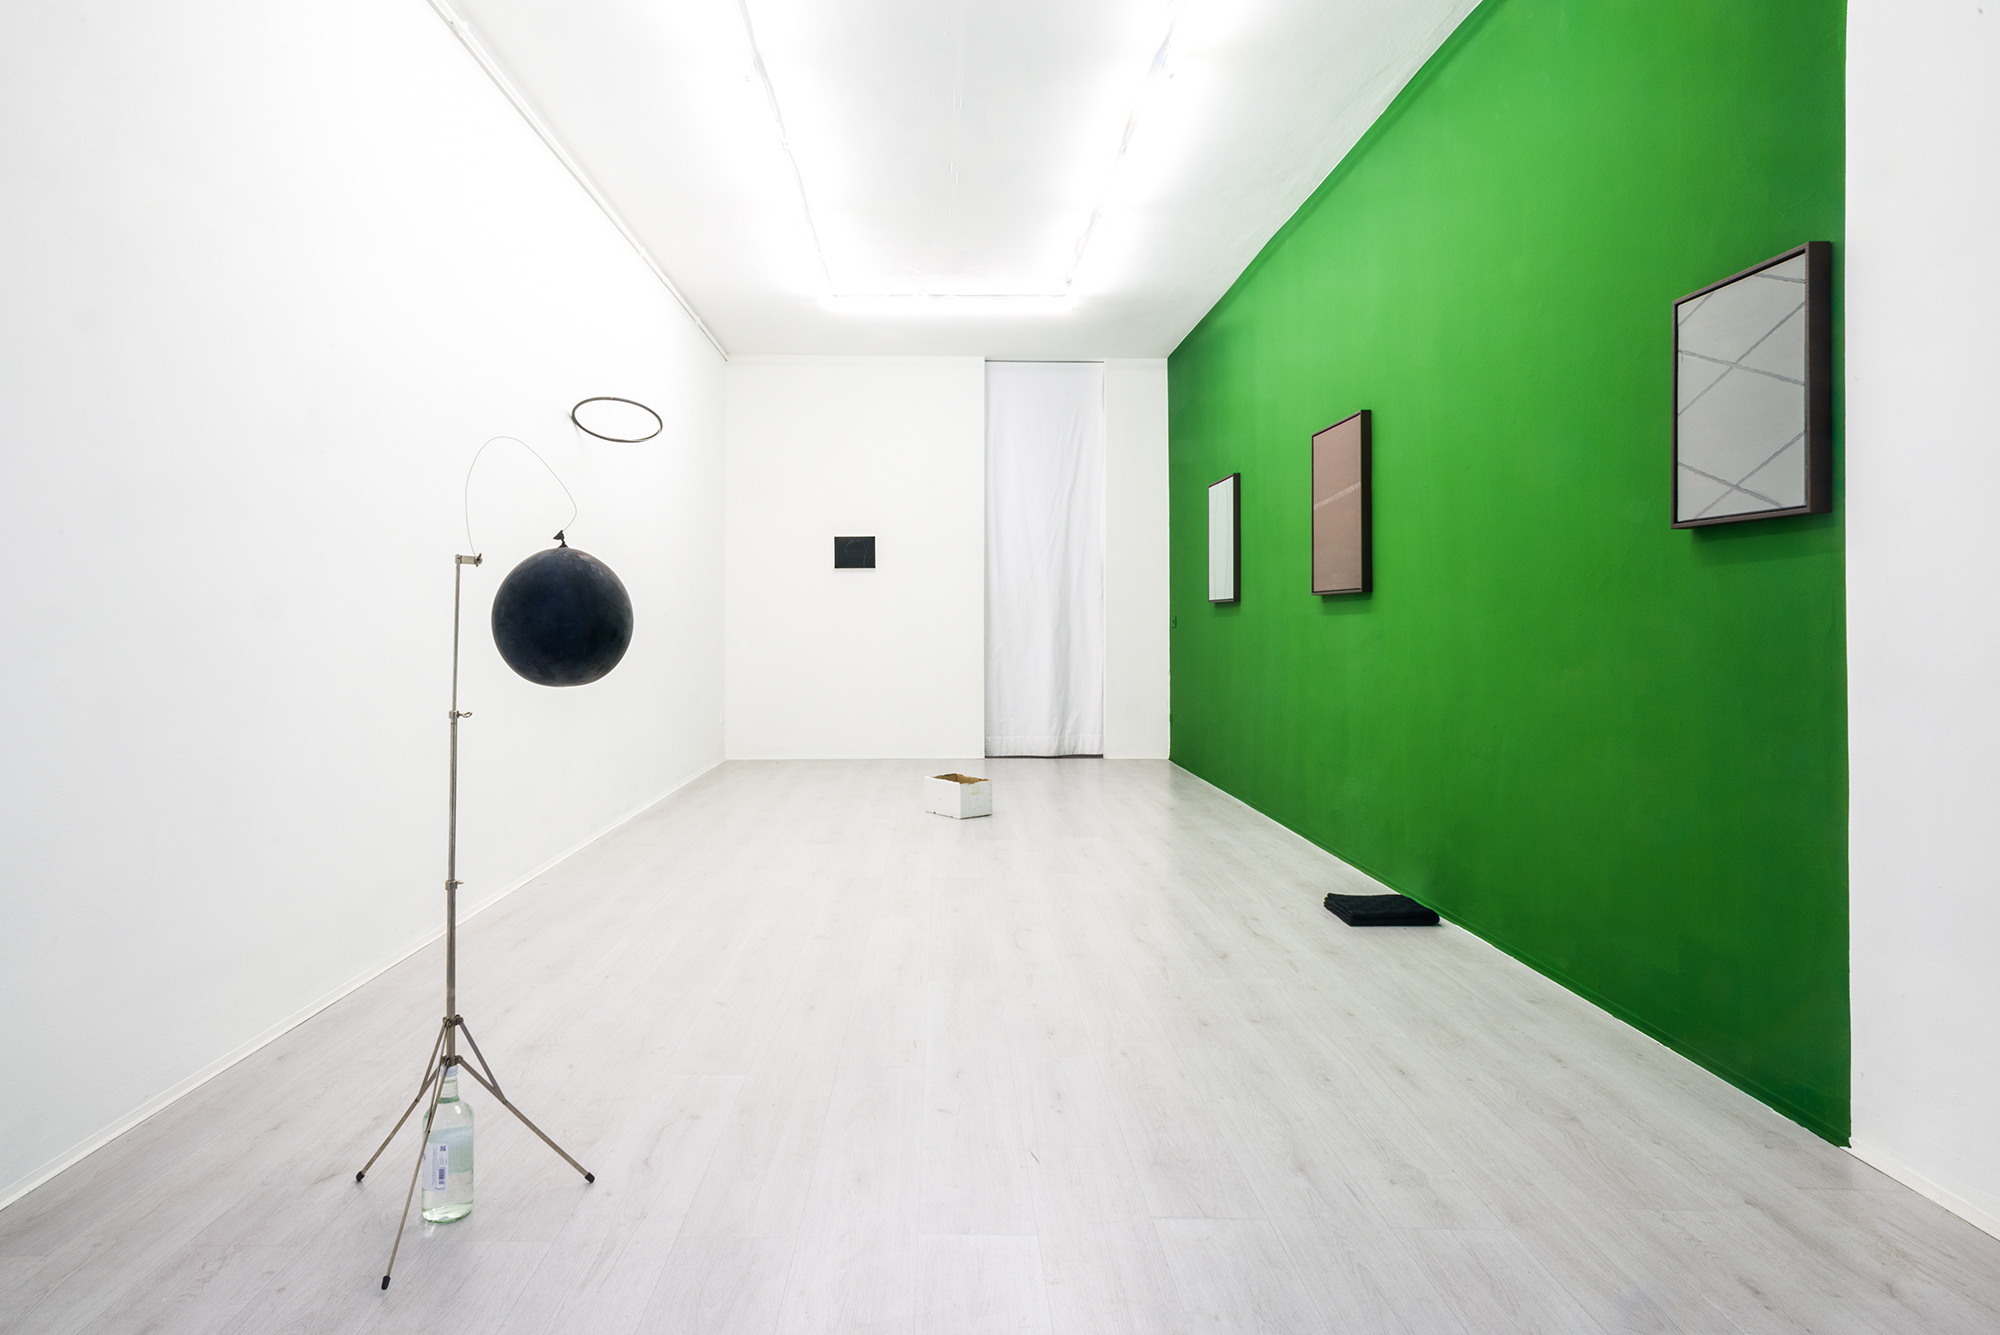 Michele Lombardelli - Luca Scarabelli, exhibition view at A+B gallery, 2017